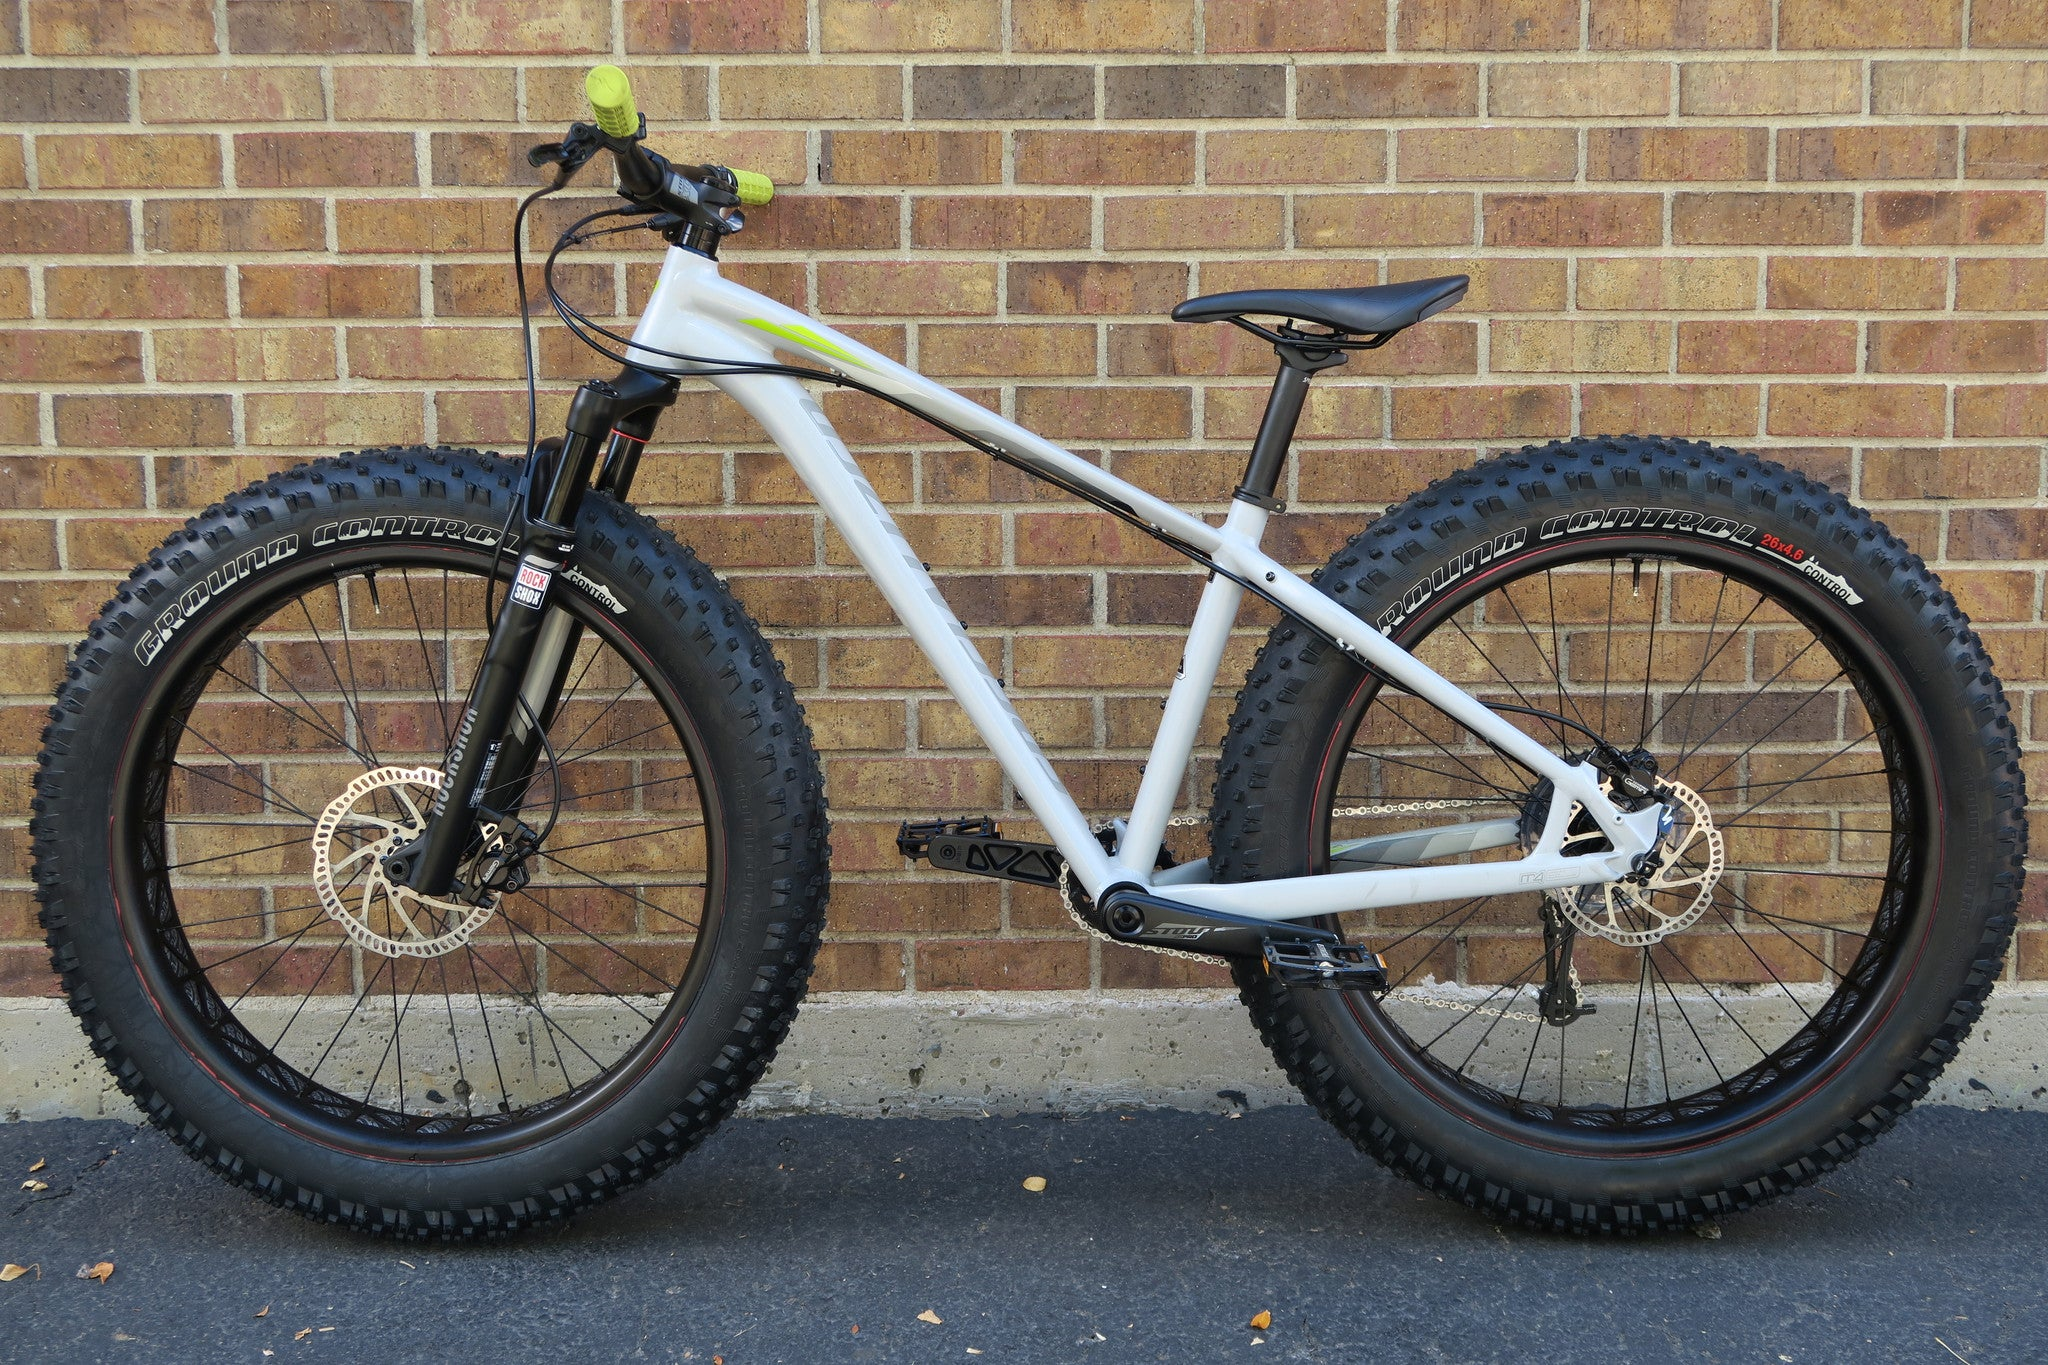 2016 SPECIALIZED FATBOY TRAIL FATBIKE